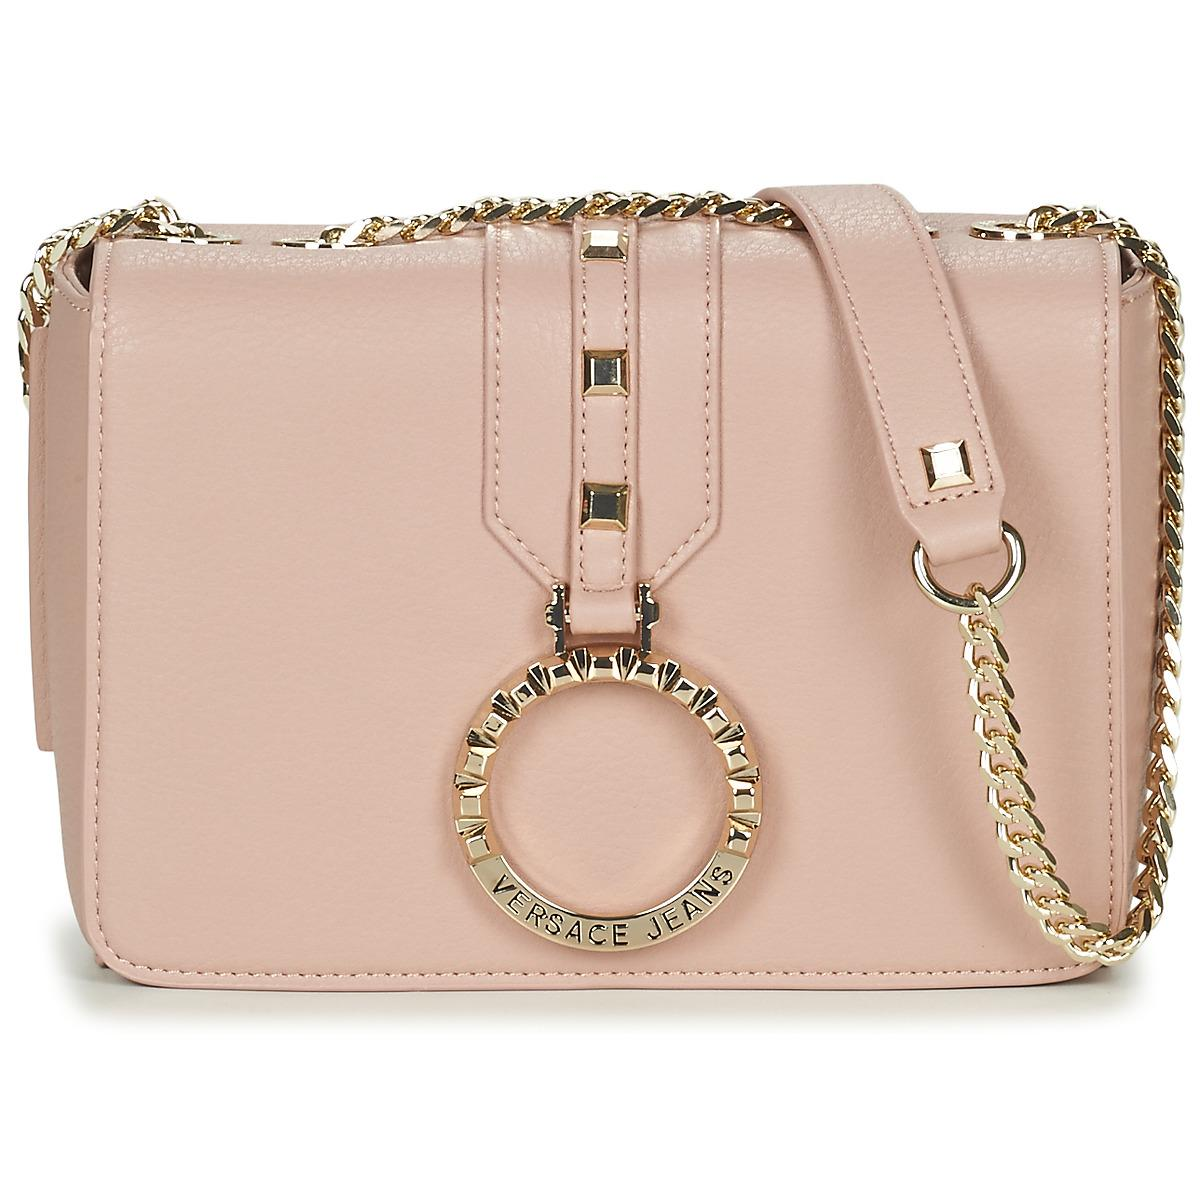 c4af48d55ead Versace Jeans E1vtbba5 Women s Shoulder Bag In Pink in Pink for Men ...